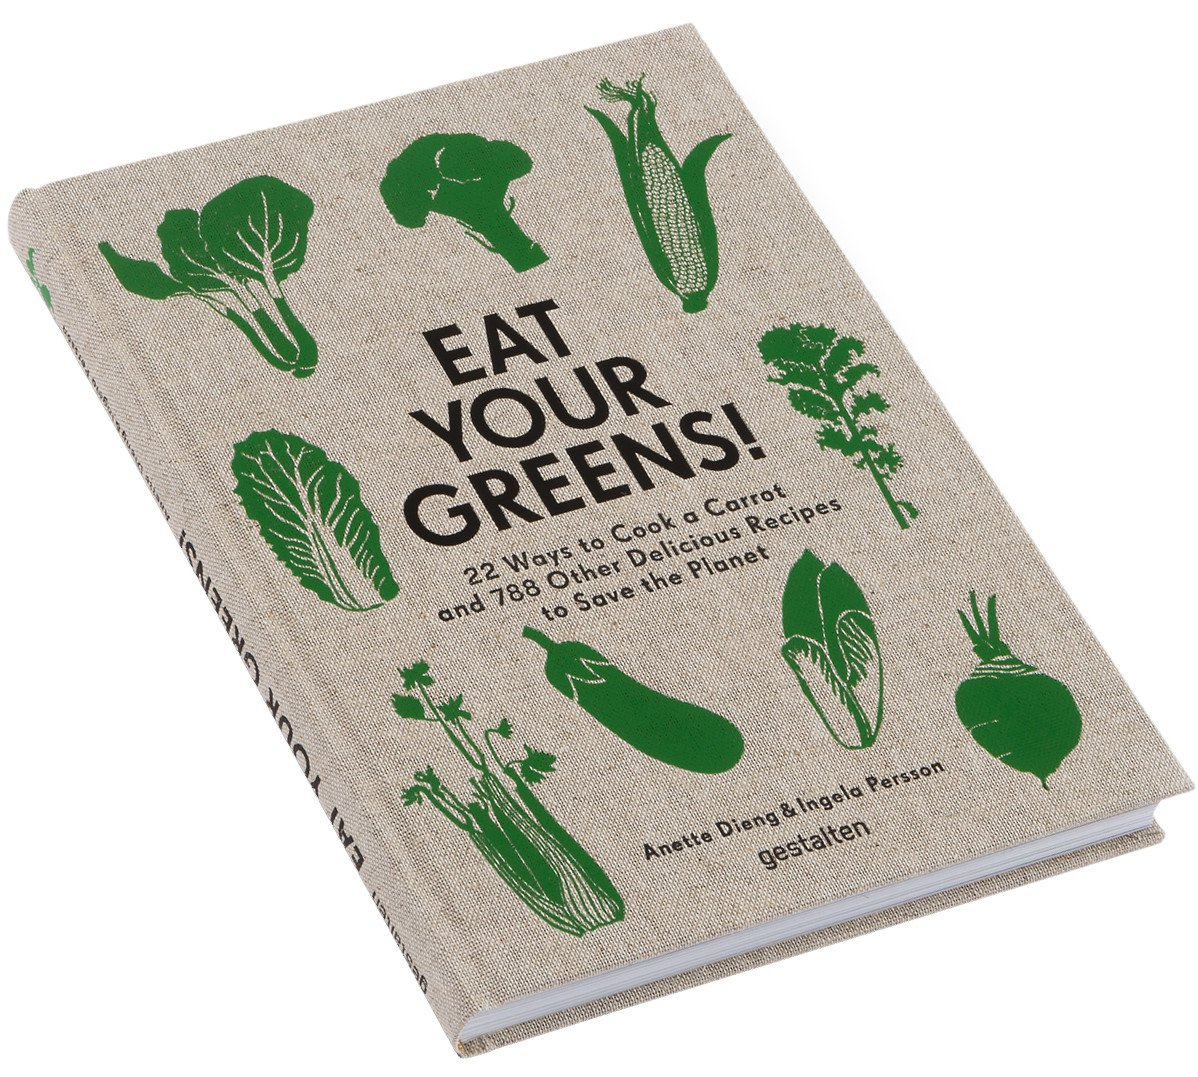 Eat Your Greens! by A. Dieng & I. Persson, gestalten